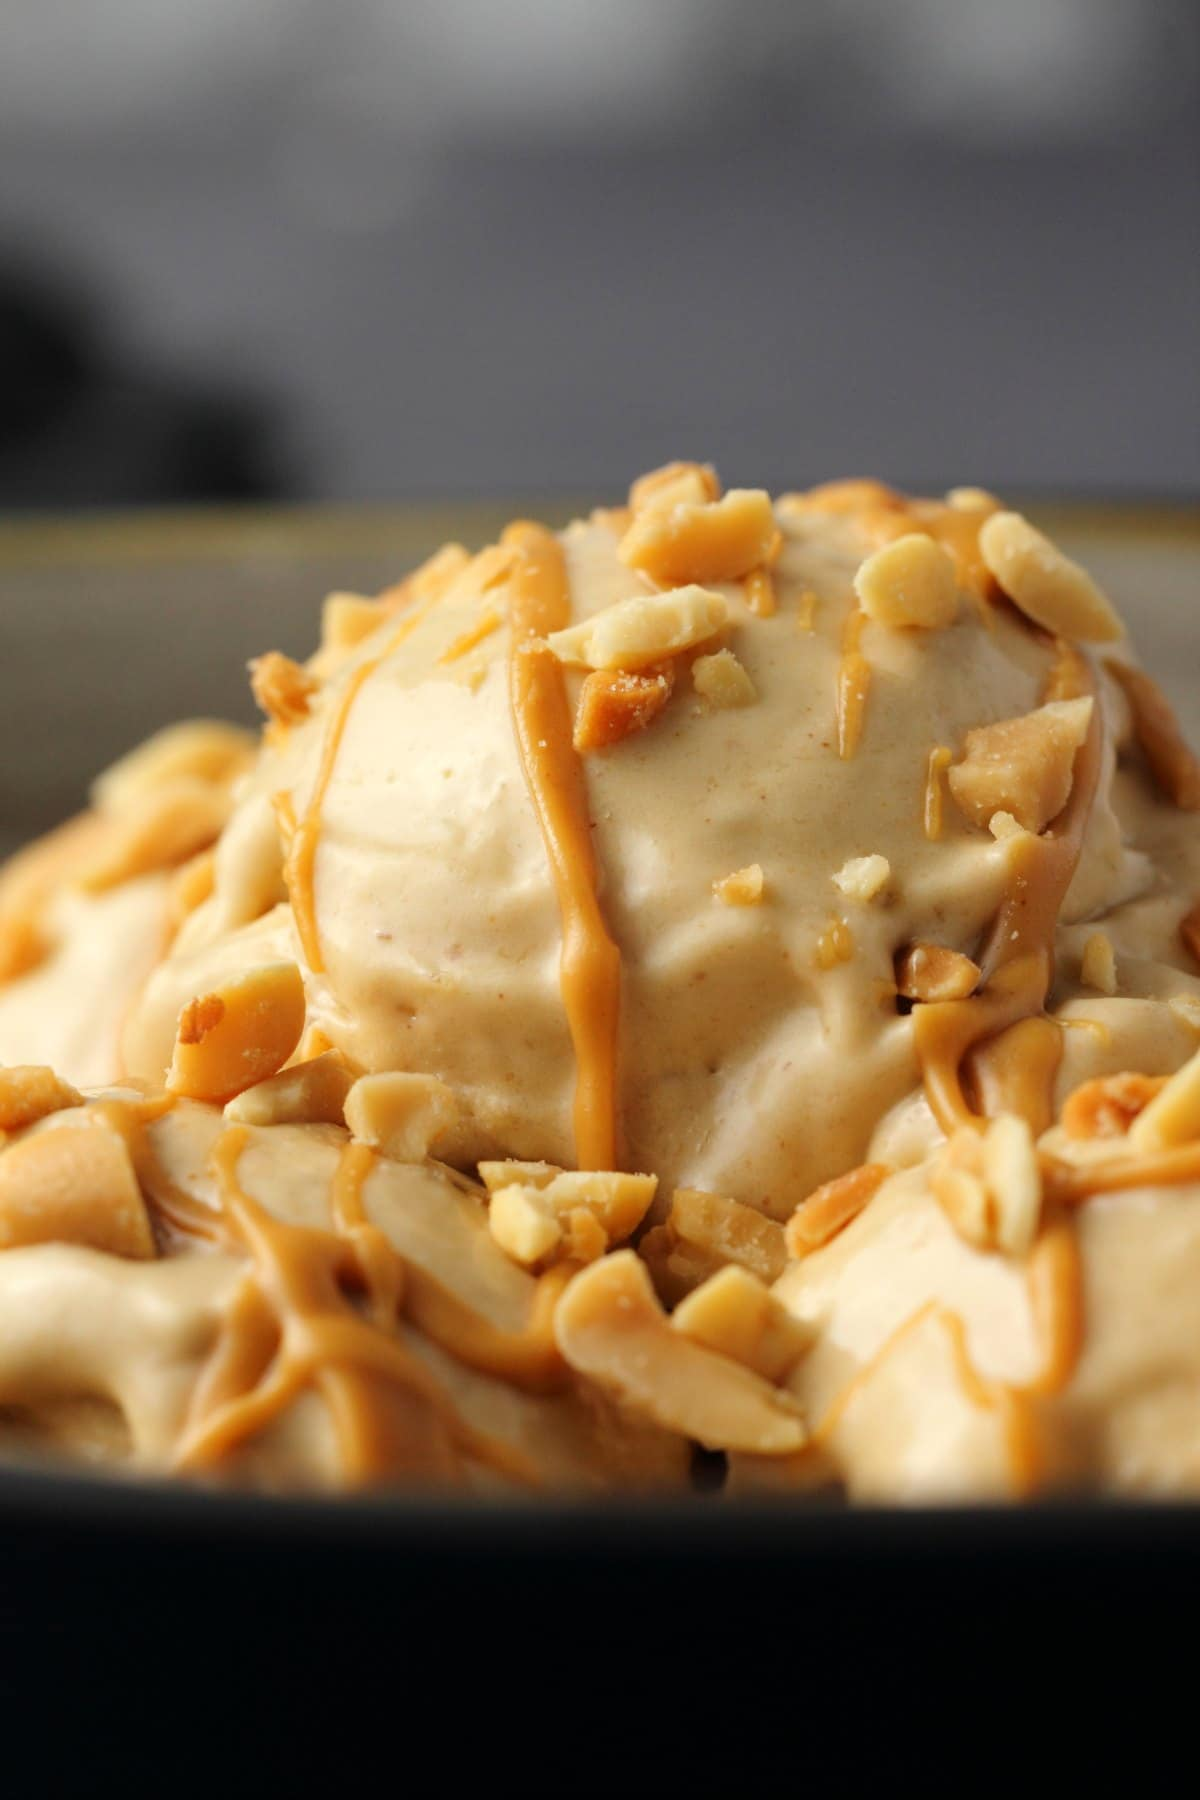 Peanut Butter Banana Ice Cream - 2 Ingredients!